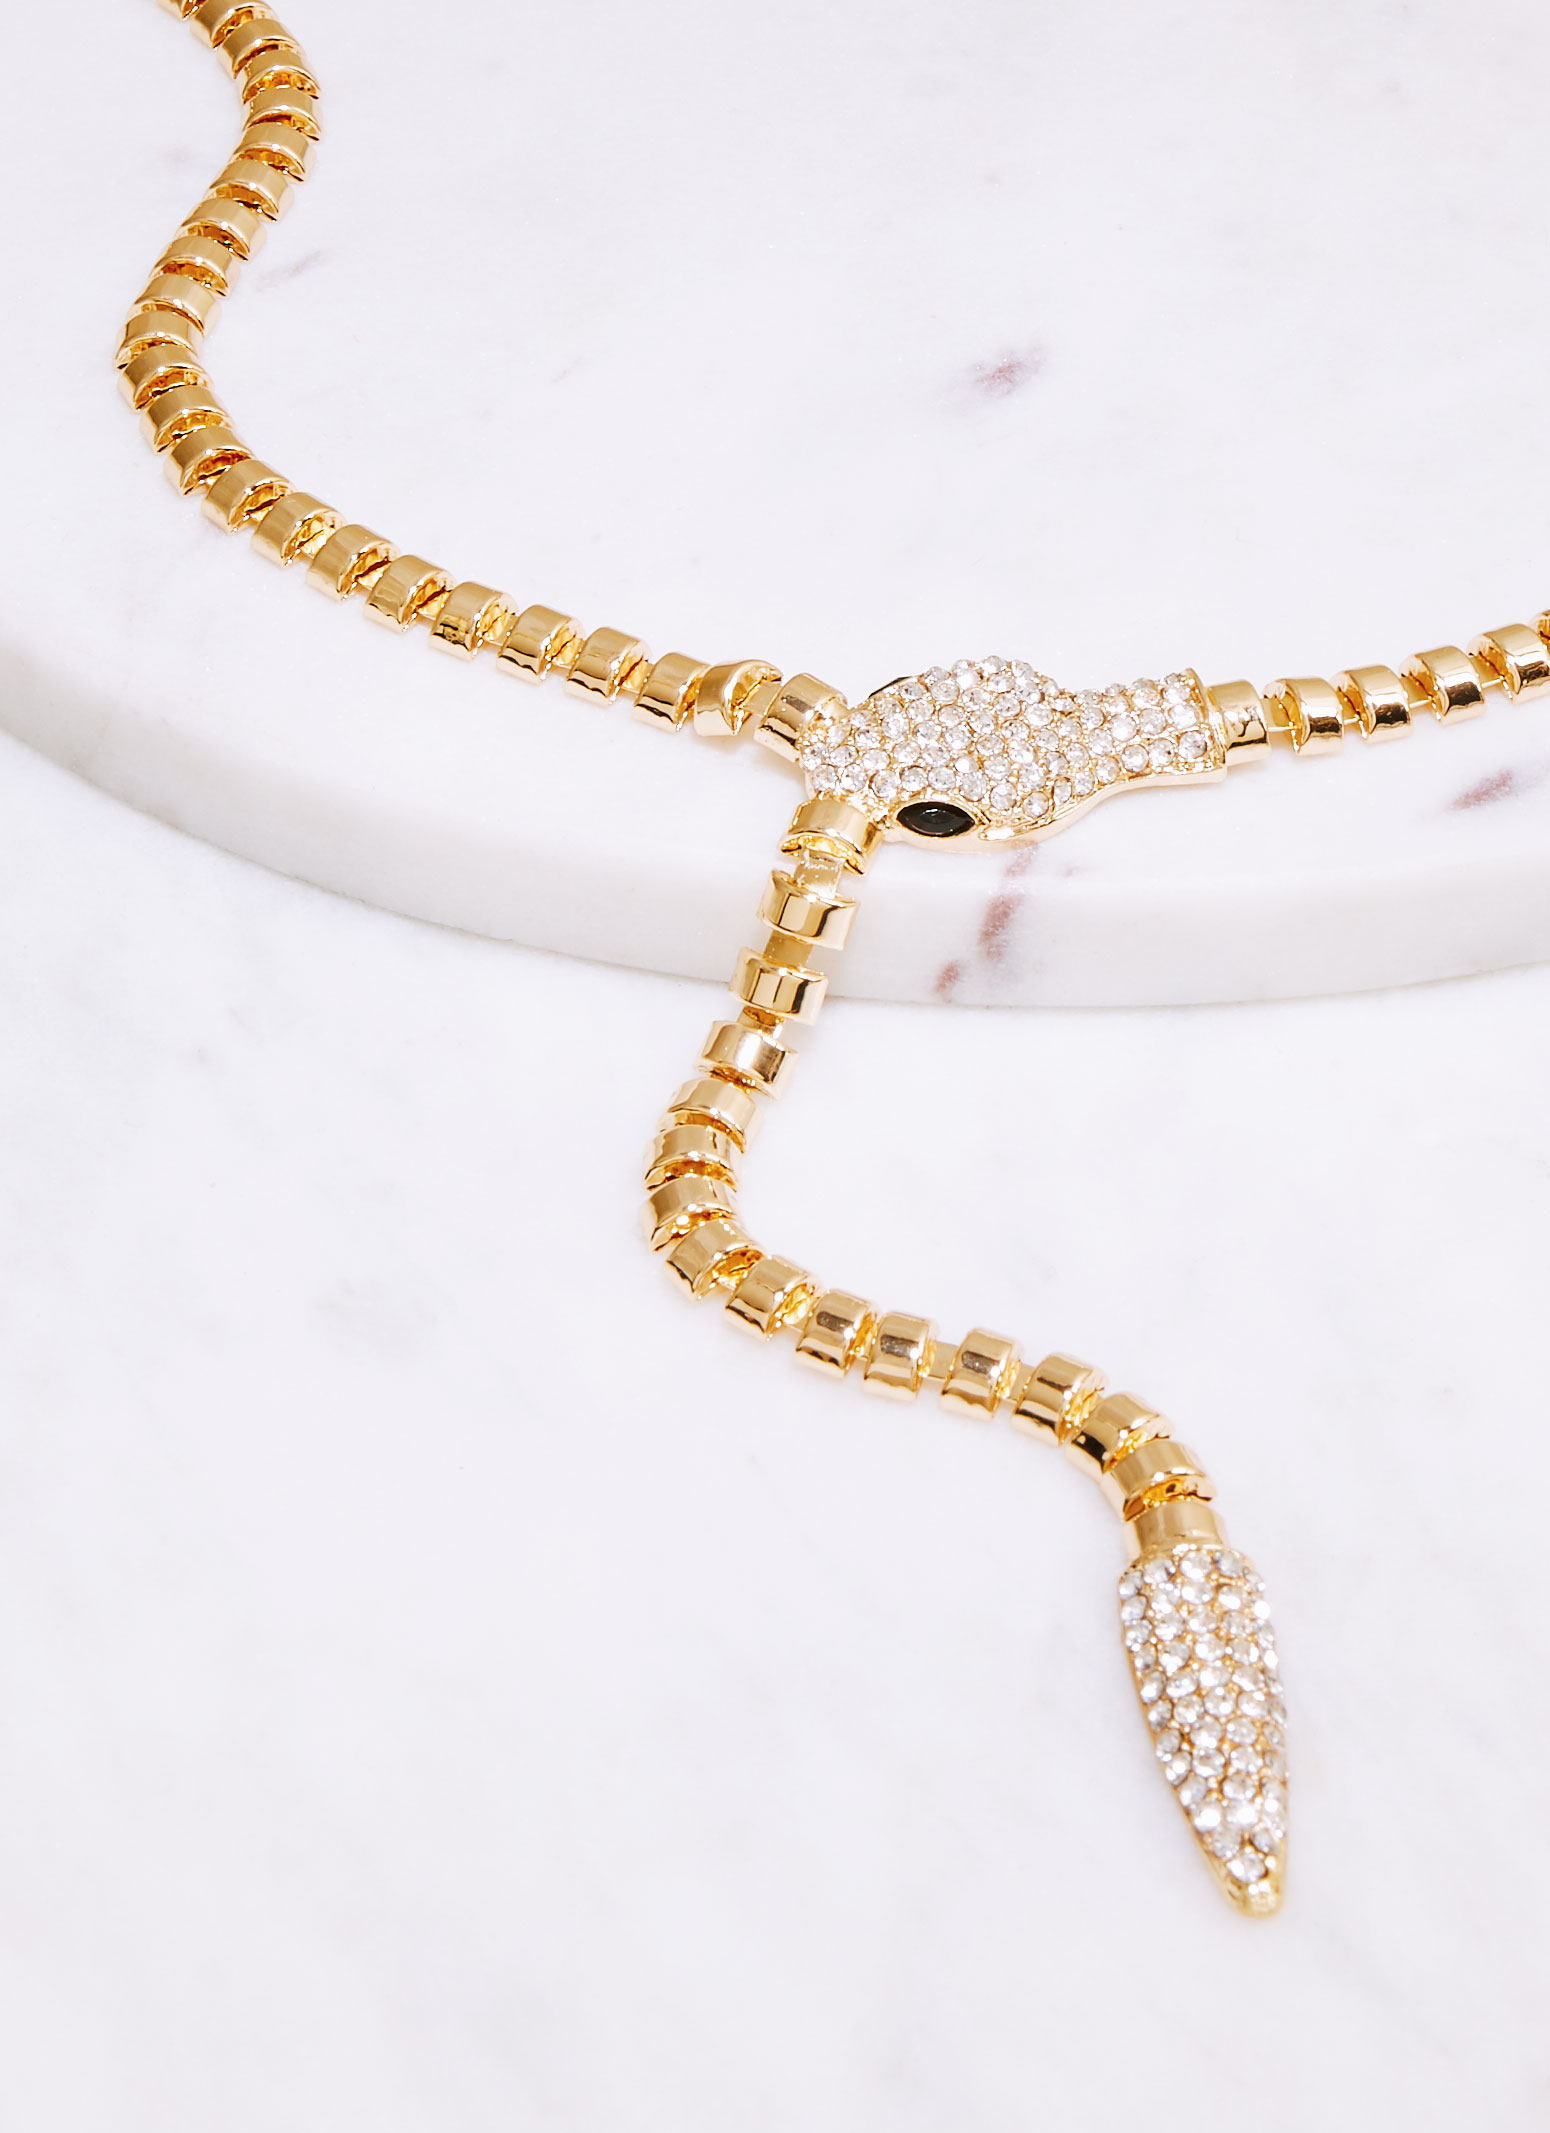 Product - e-commerce - Jewelry